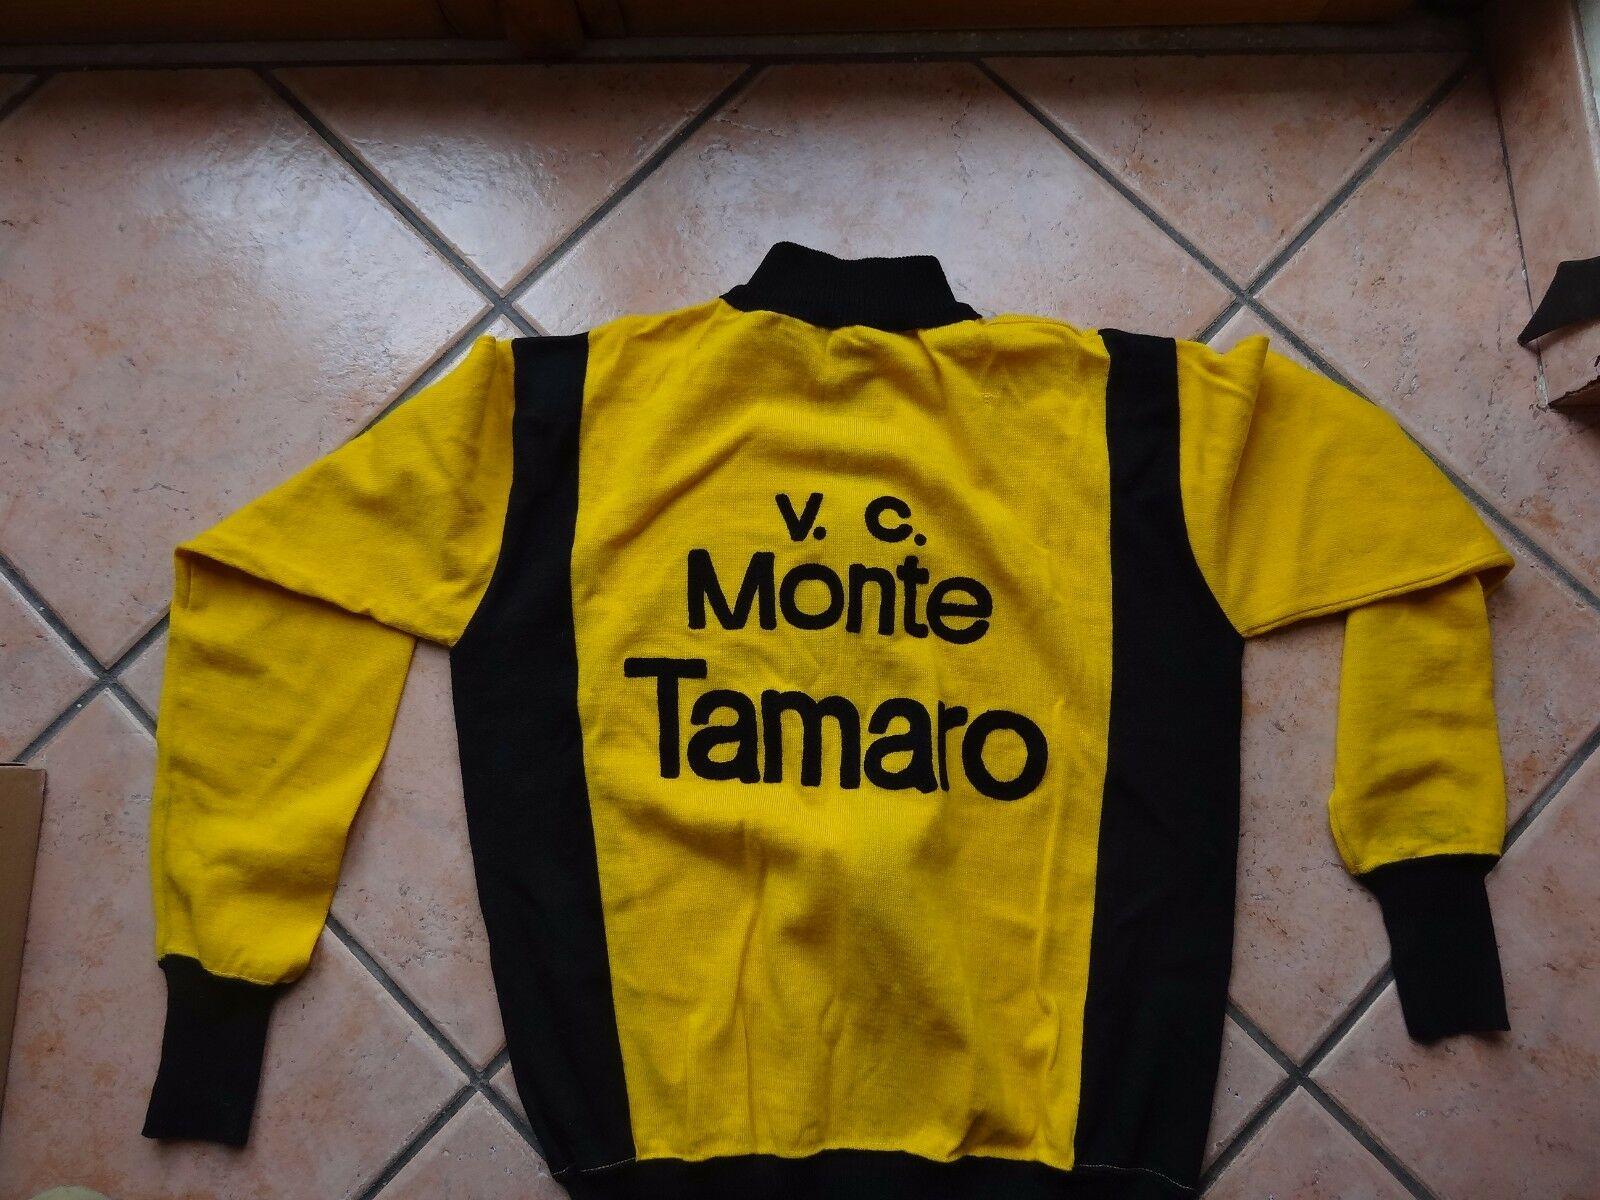 Vintage Velo Club Monte jersey Tamaro jersey Monte cycling wool original L'Eroica 504a69